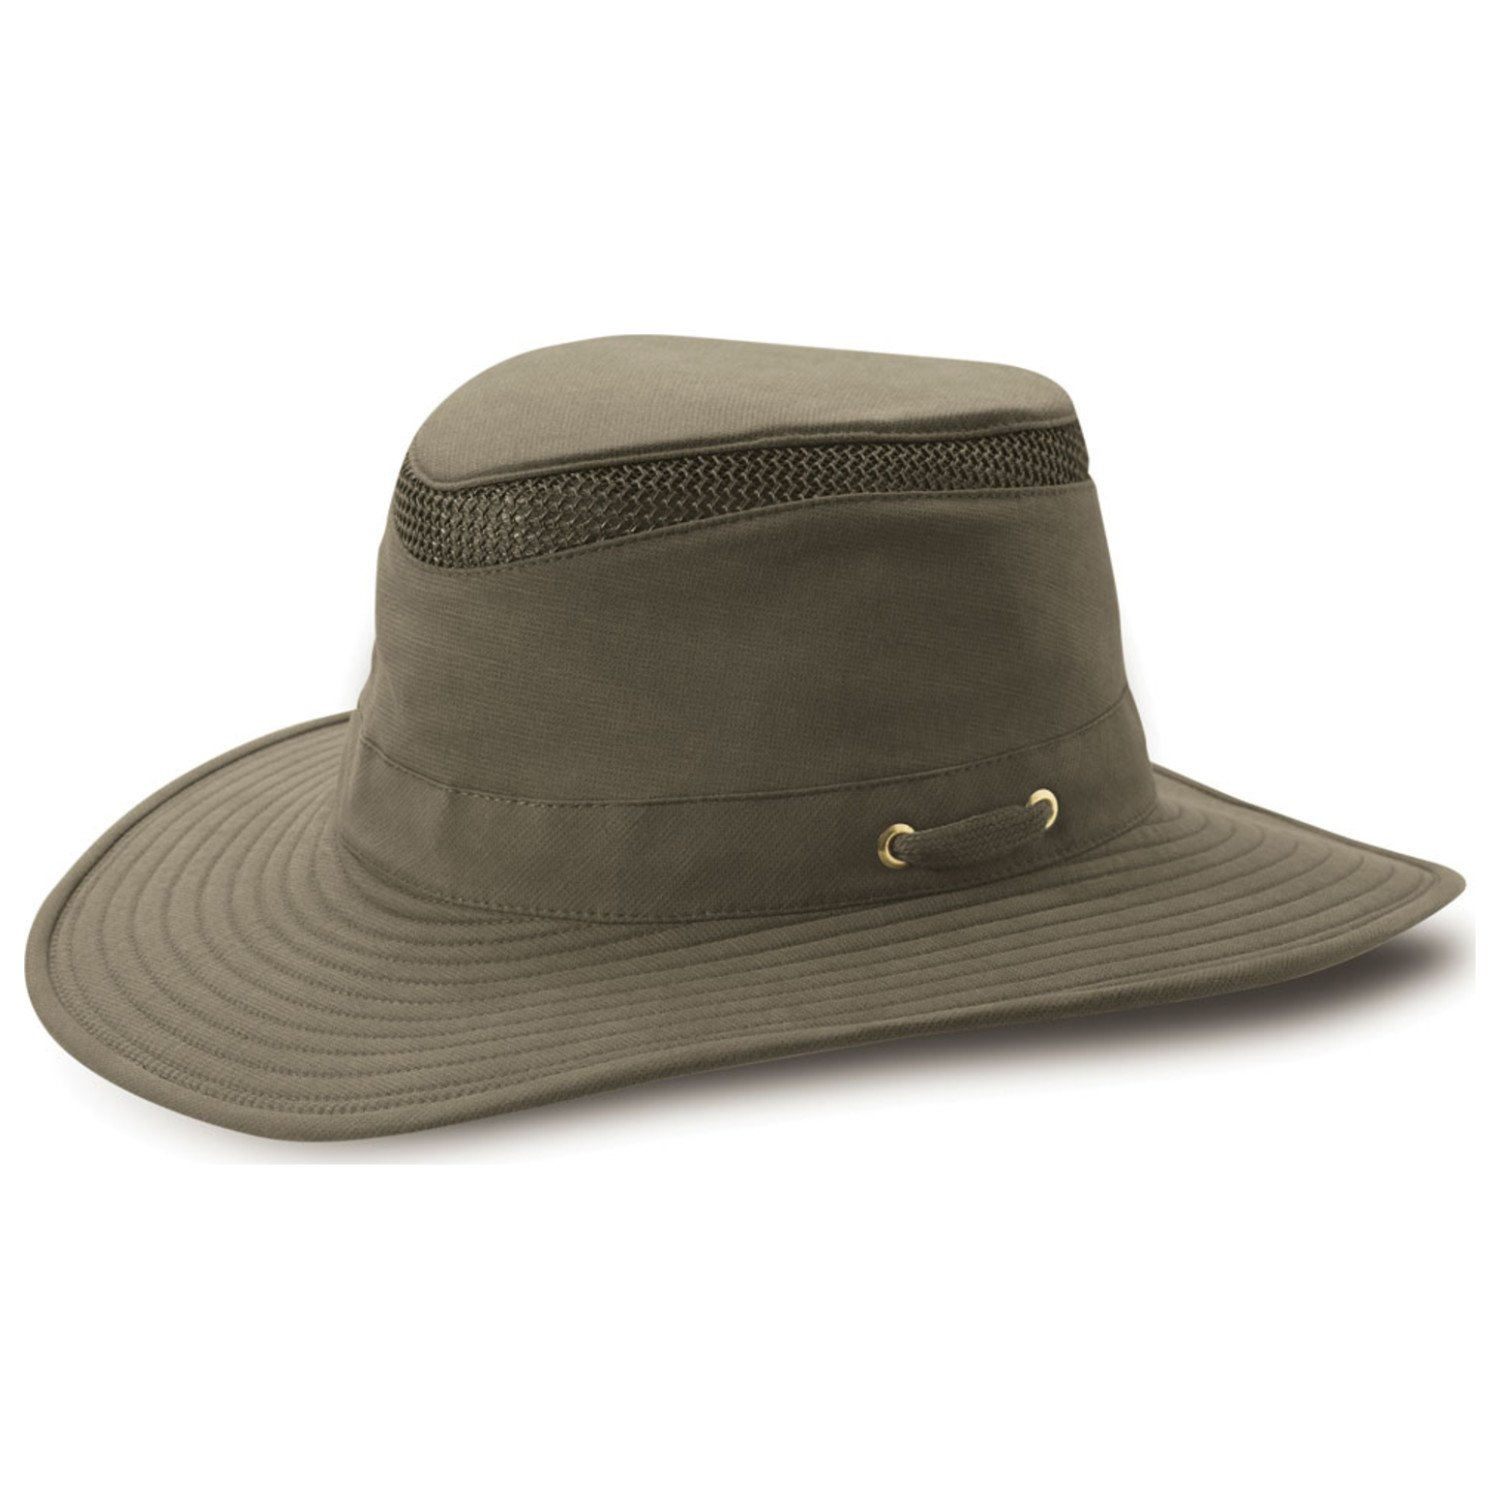 9a46be5c8c4 Tilley T4MO-1 Broad Curved Brim Hikers Hat - Olive